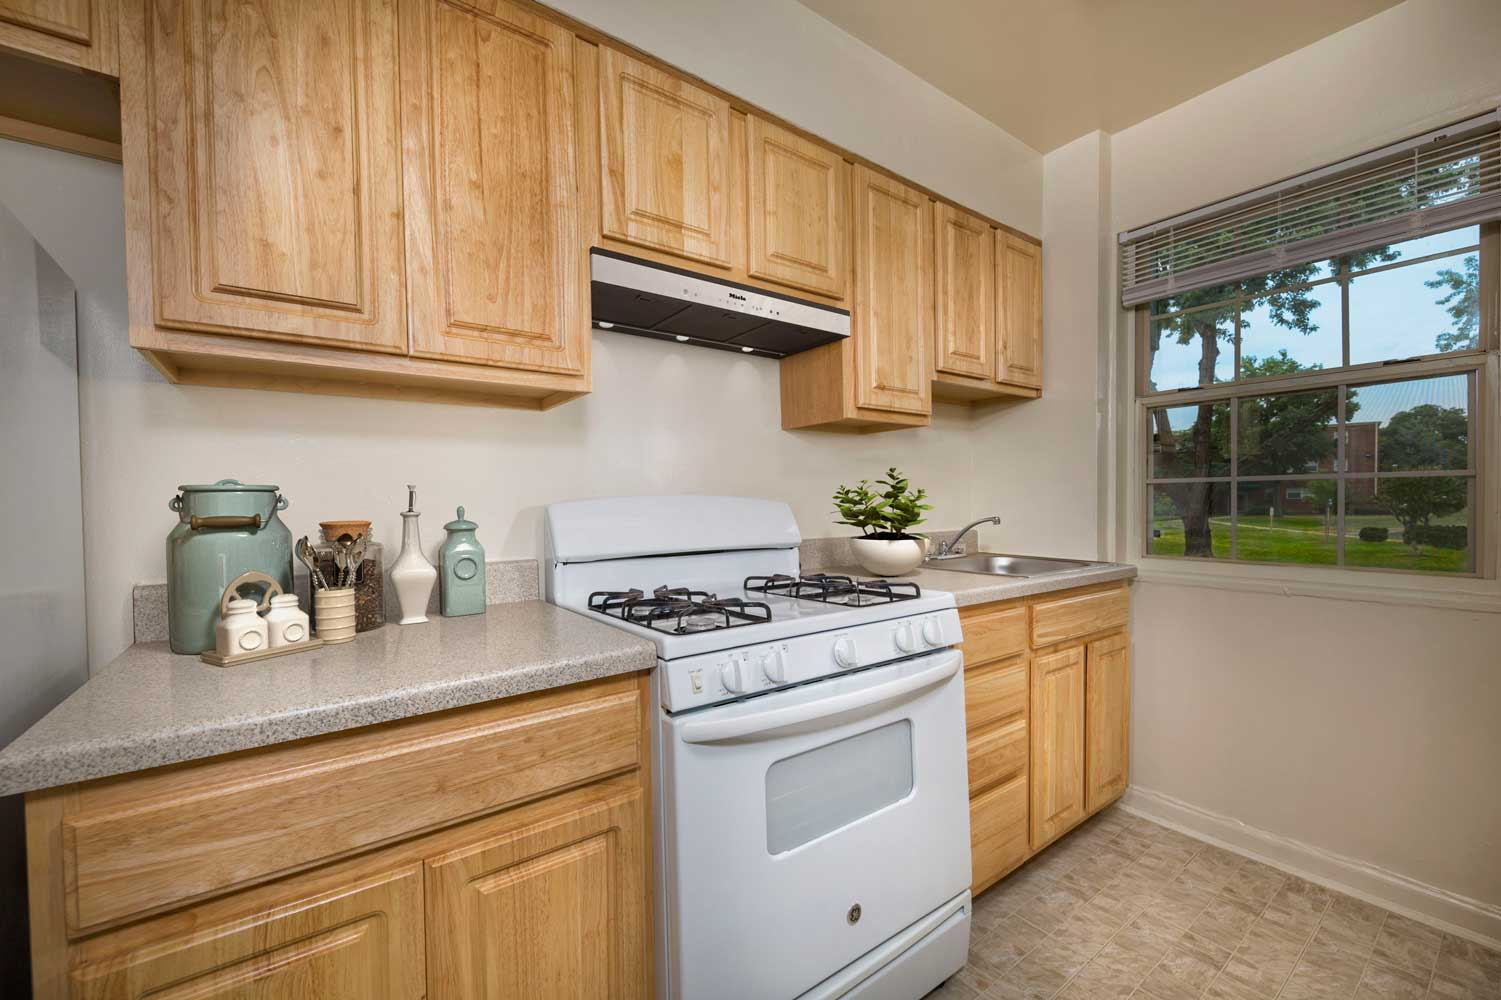 Kitchen with all essentials at Kirkwood Apartments in Hyattsville, MD